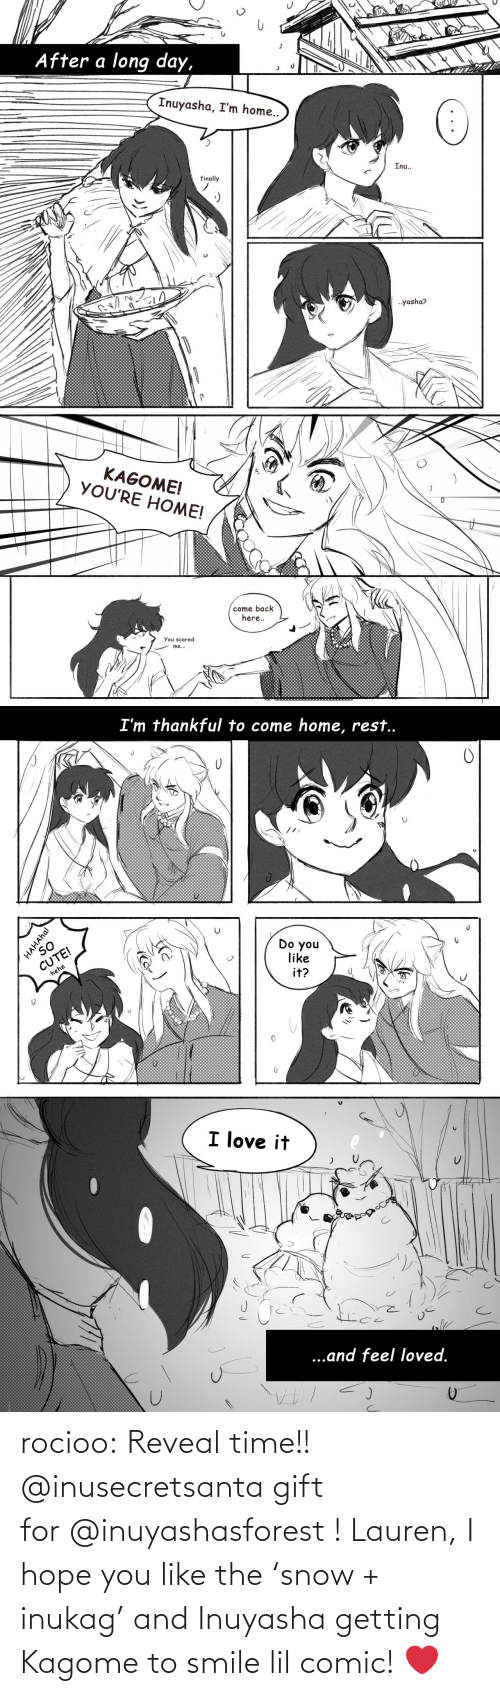 Smile: rocioo: Reveal time!! @inusecretsanta gift for @inuyashasforest ! Lauren, I hope you like the 'snow + inukag' and Inuyasha getting Kagome to smile lil comic! ❤